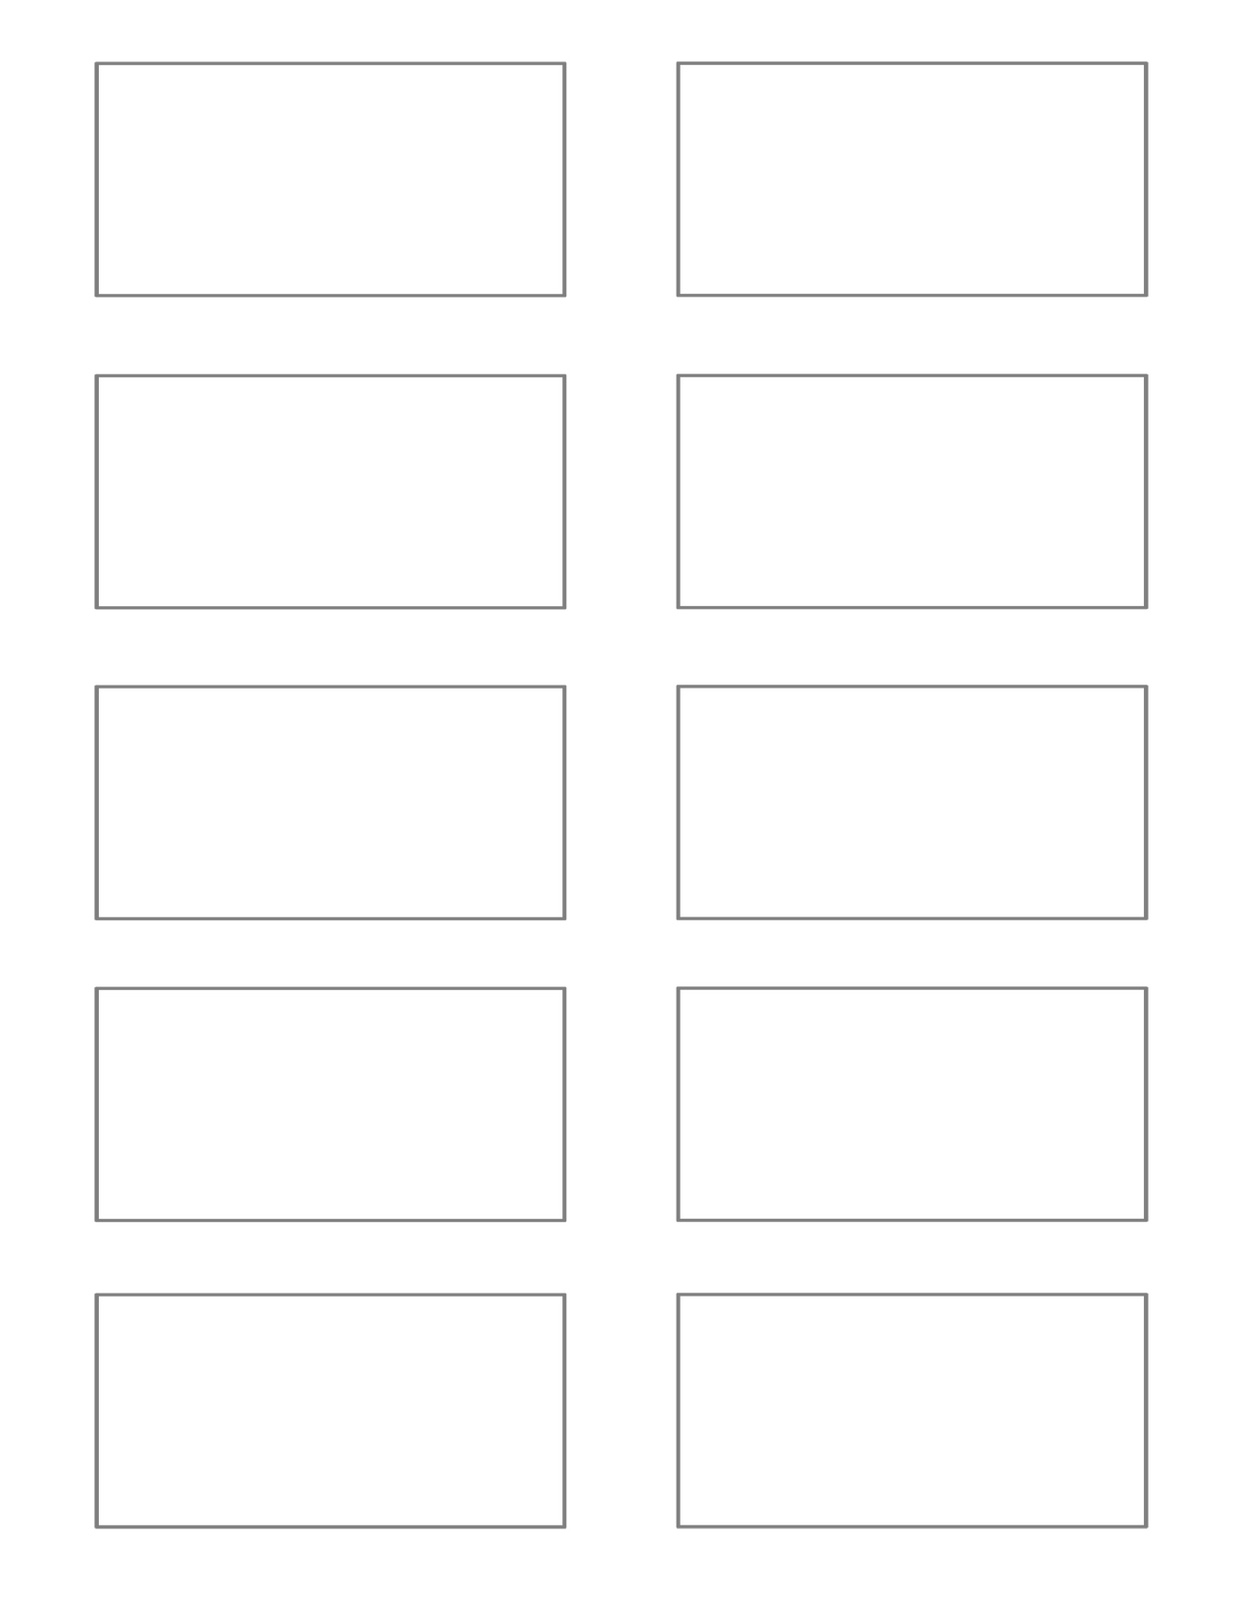 Download image Comic Strip Storyboard Template PC, Android, iPhone and ...